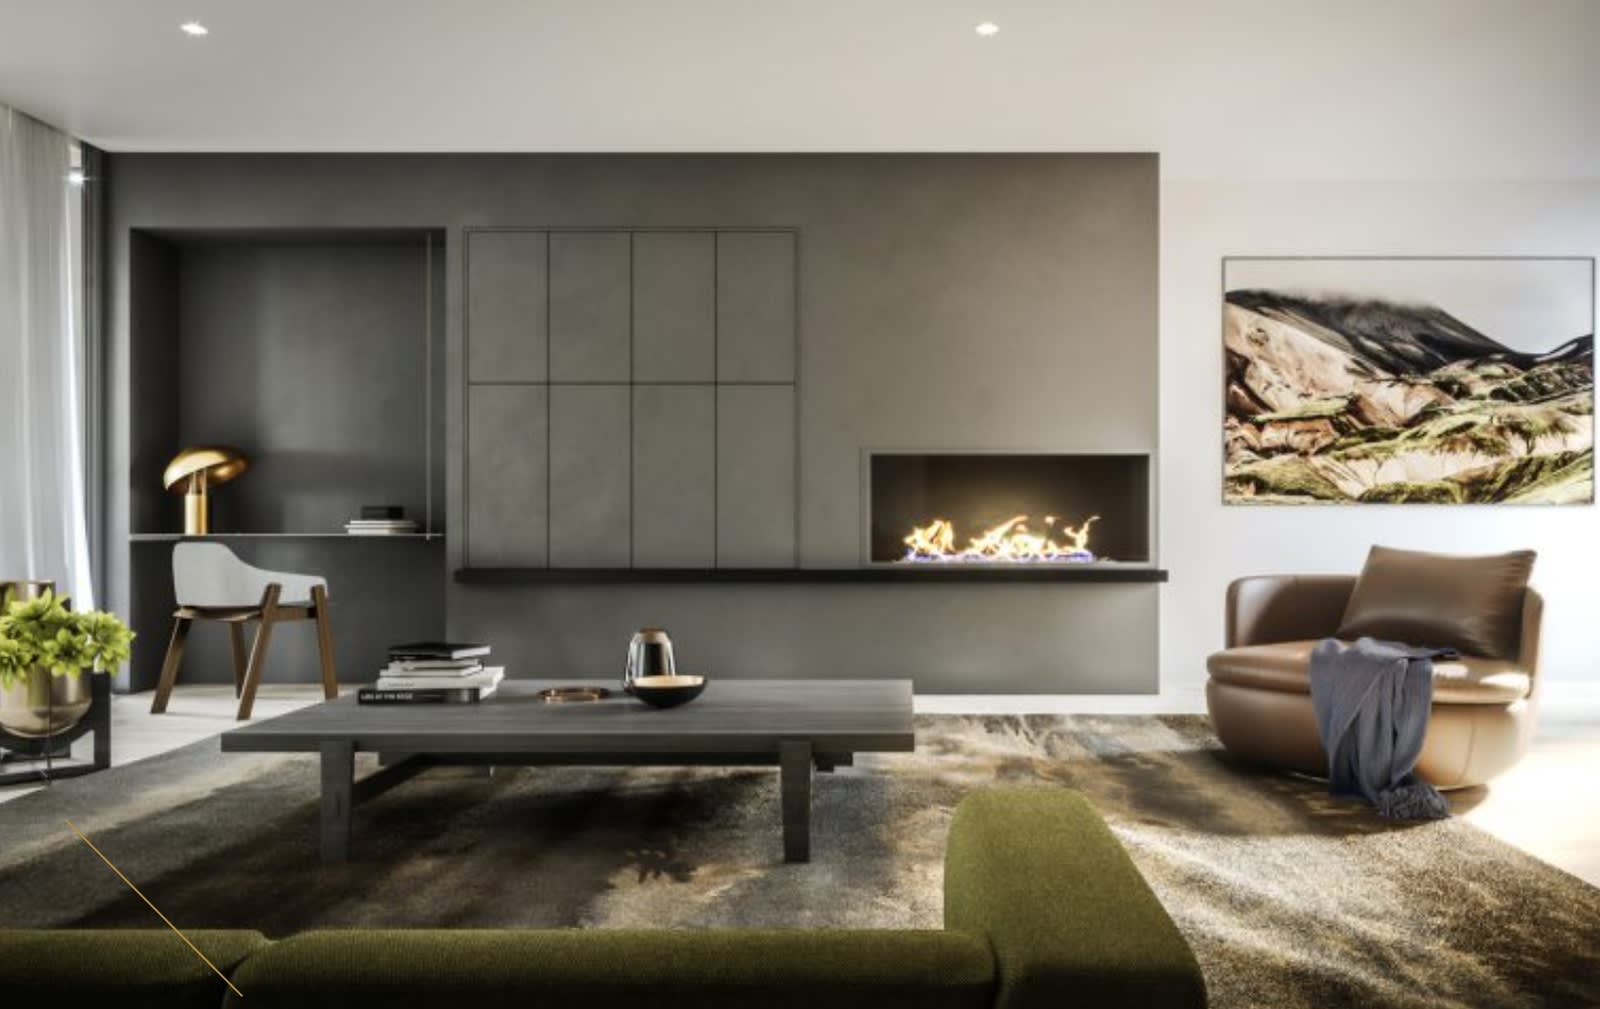 Seven things you'll love about living at Melbourne's luxury K1 Residences